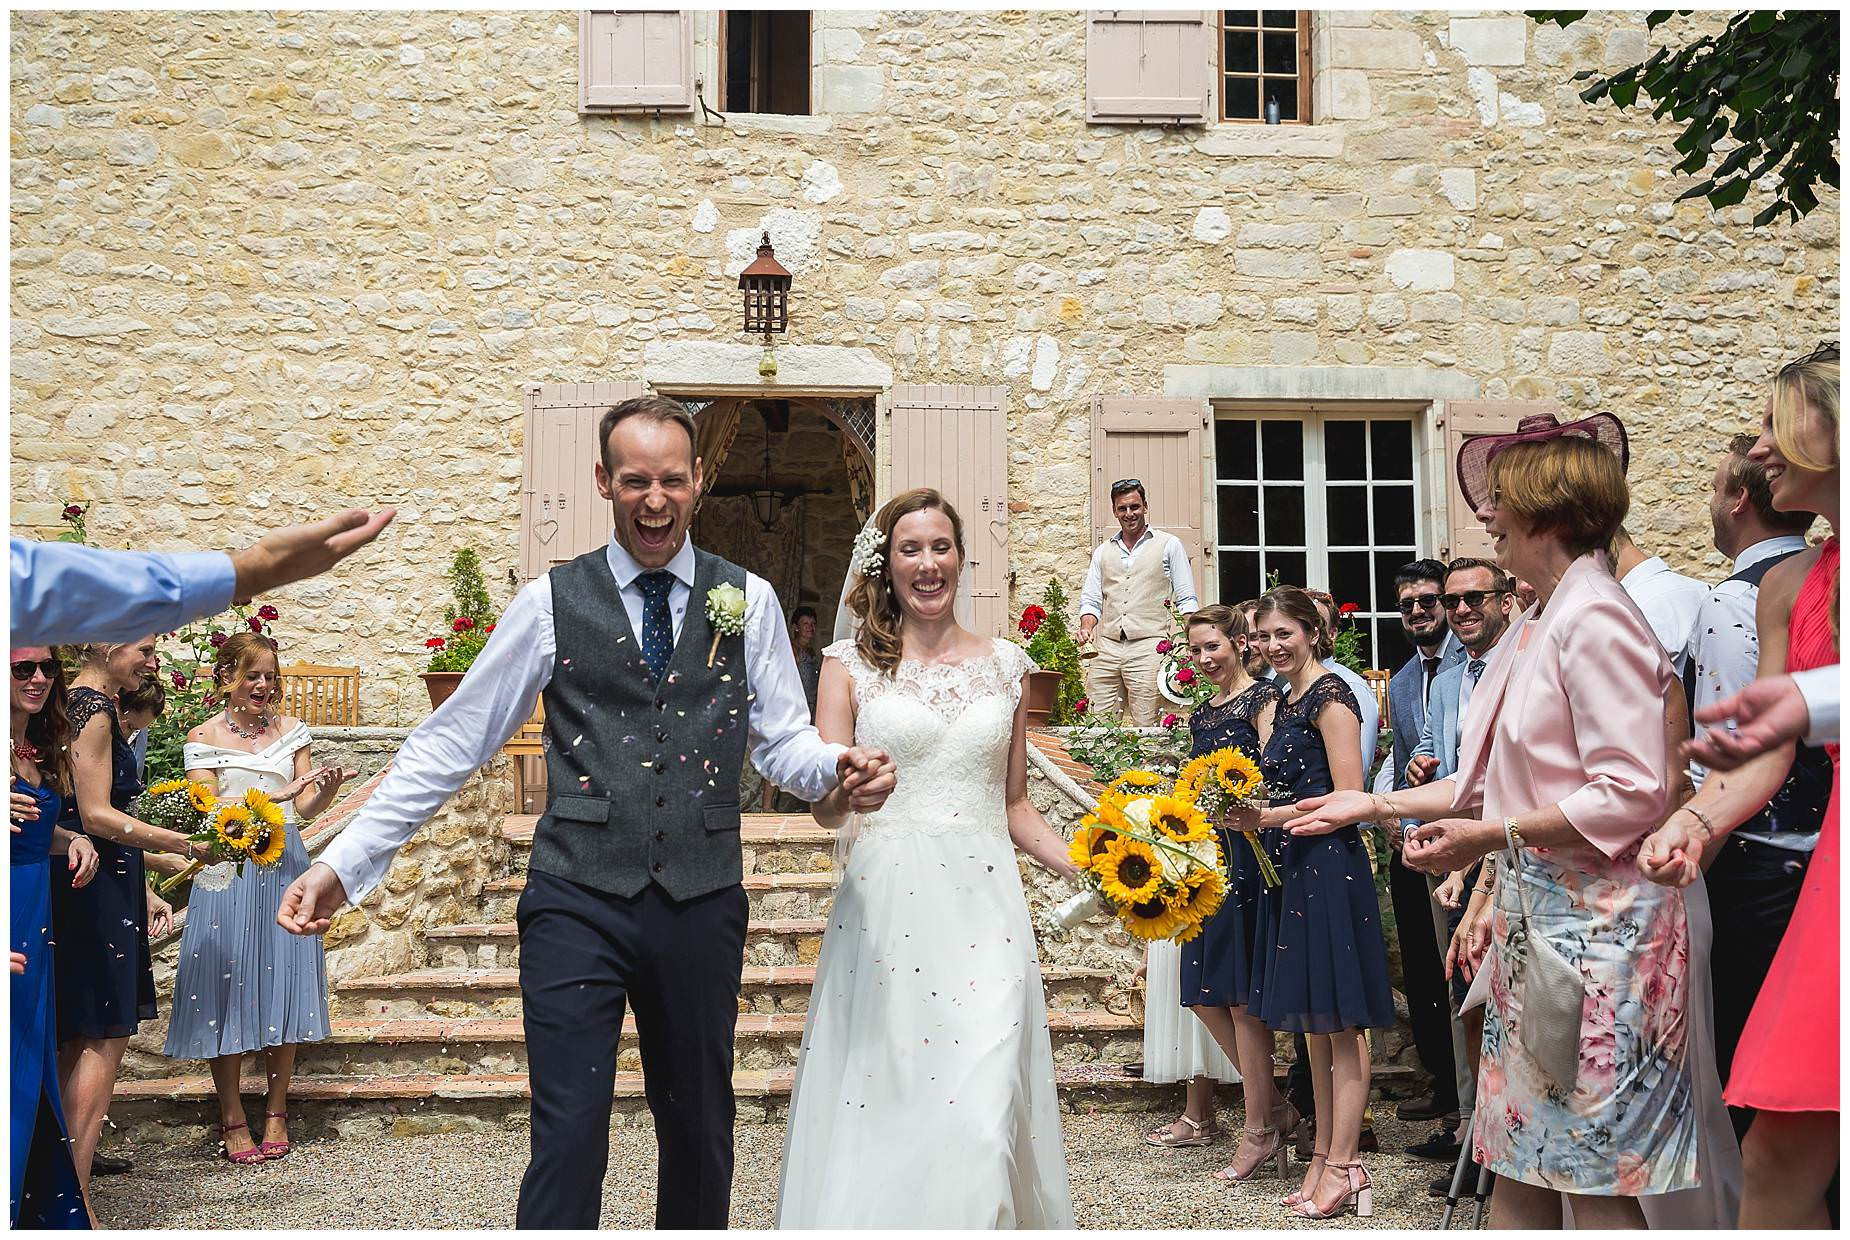 sunflower themed wedding at chateau brametourte wedding